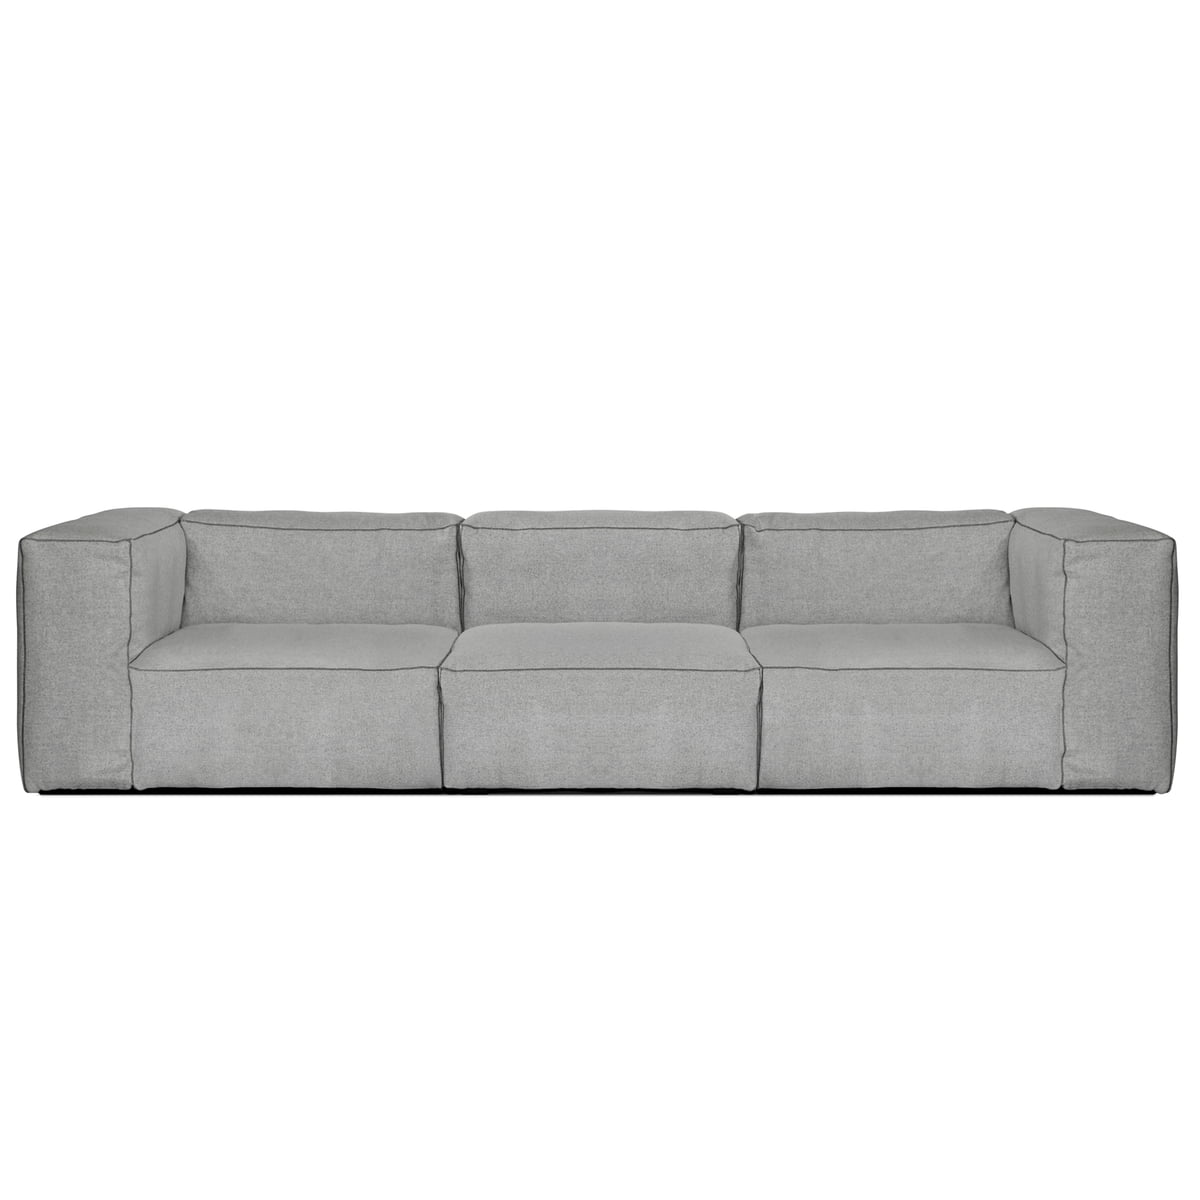 Hay   Mags Soft Sofa, 3 Seater, Hallingdal 130 Light Grey